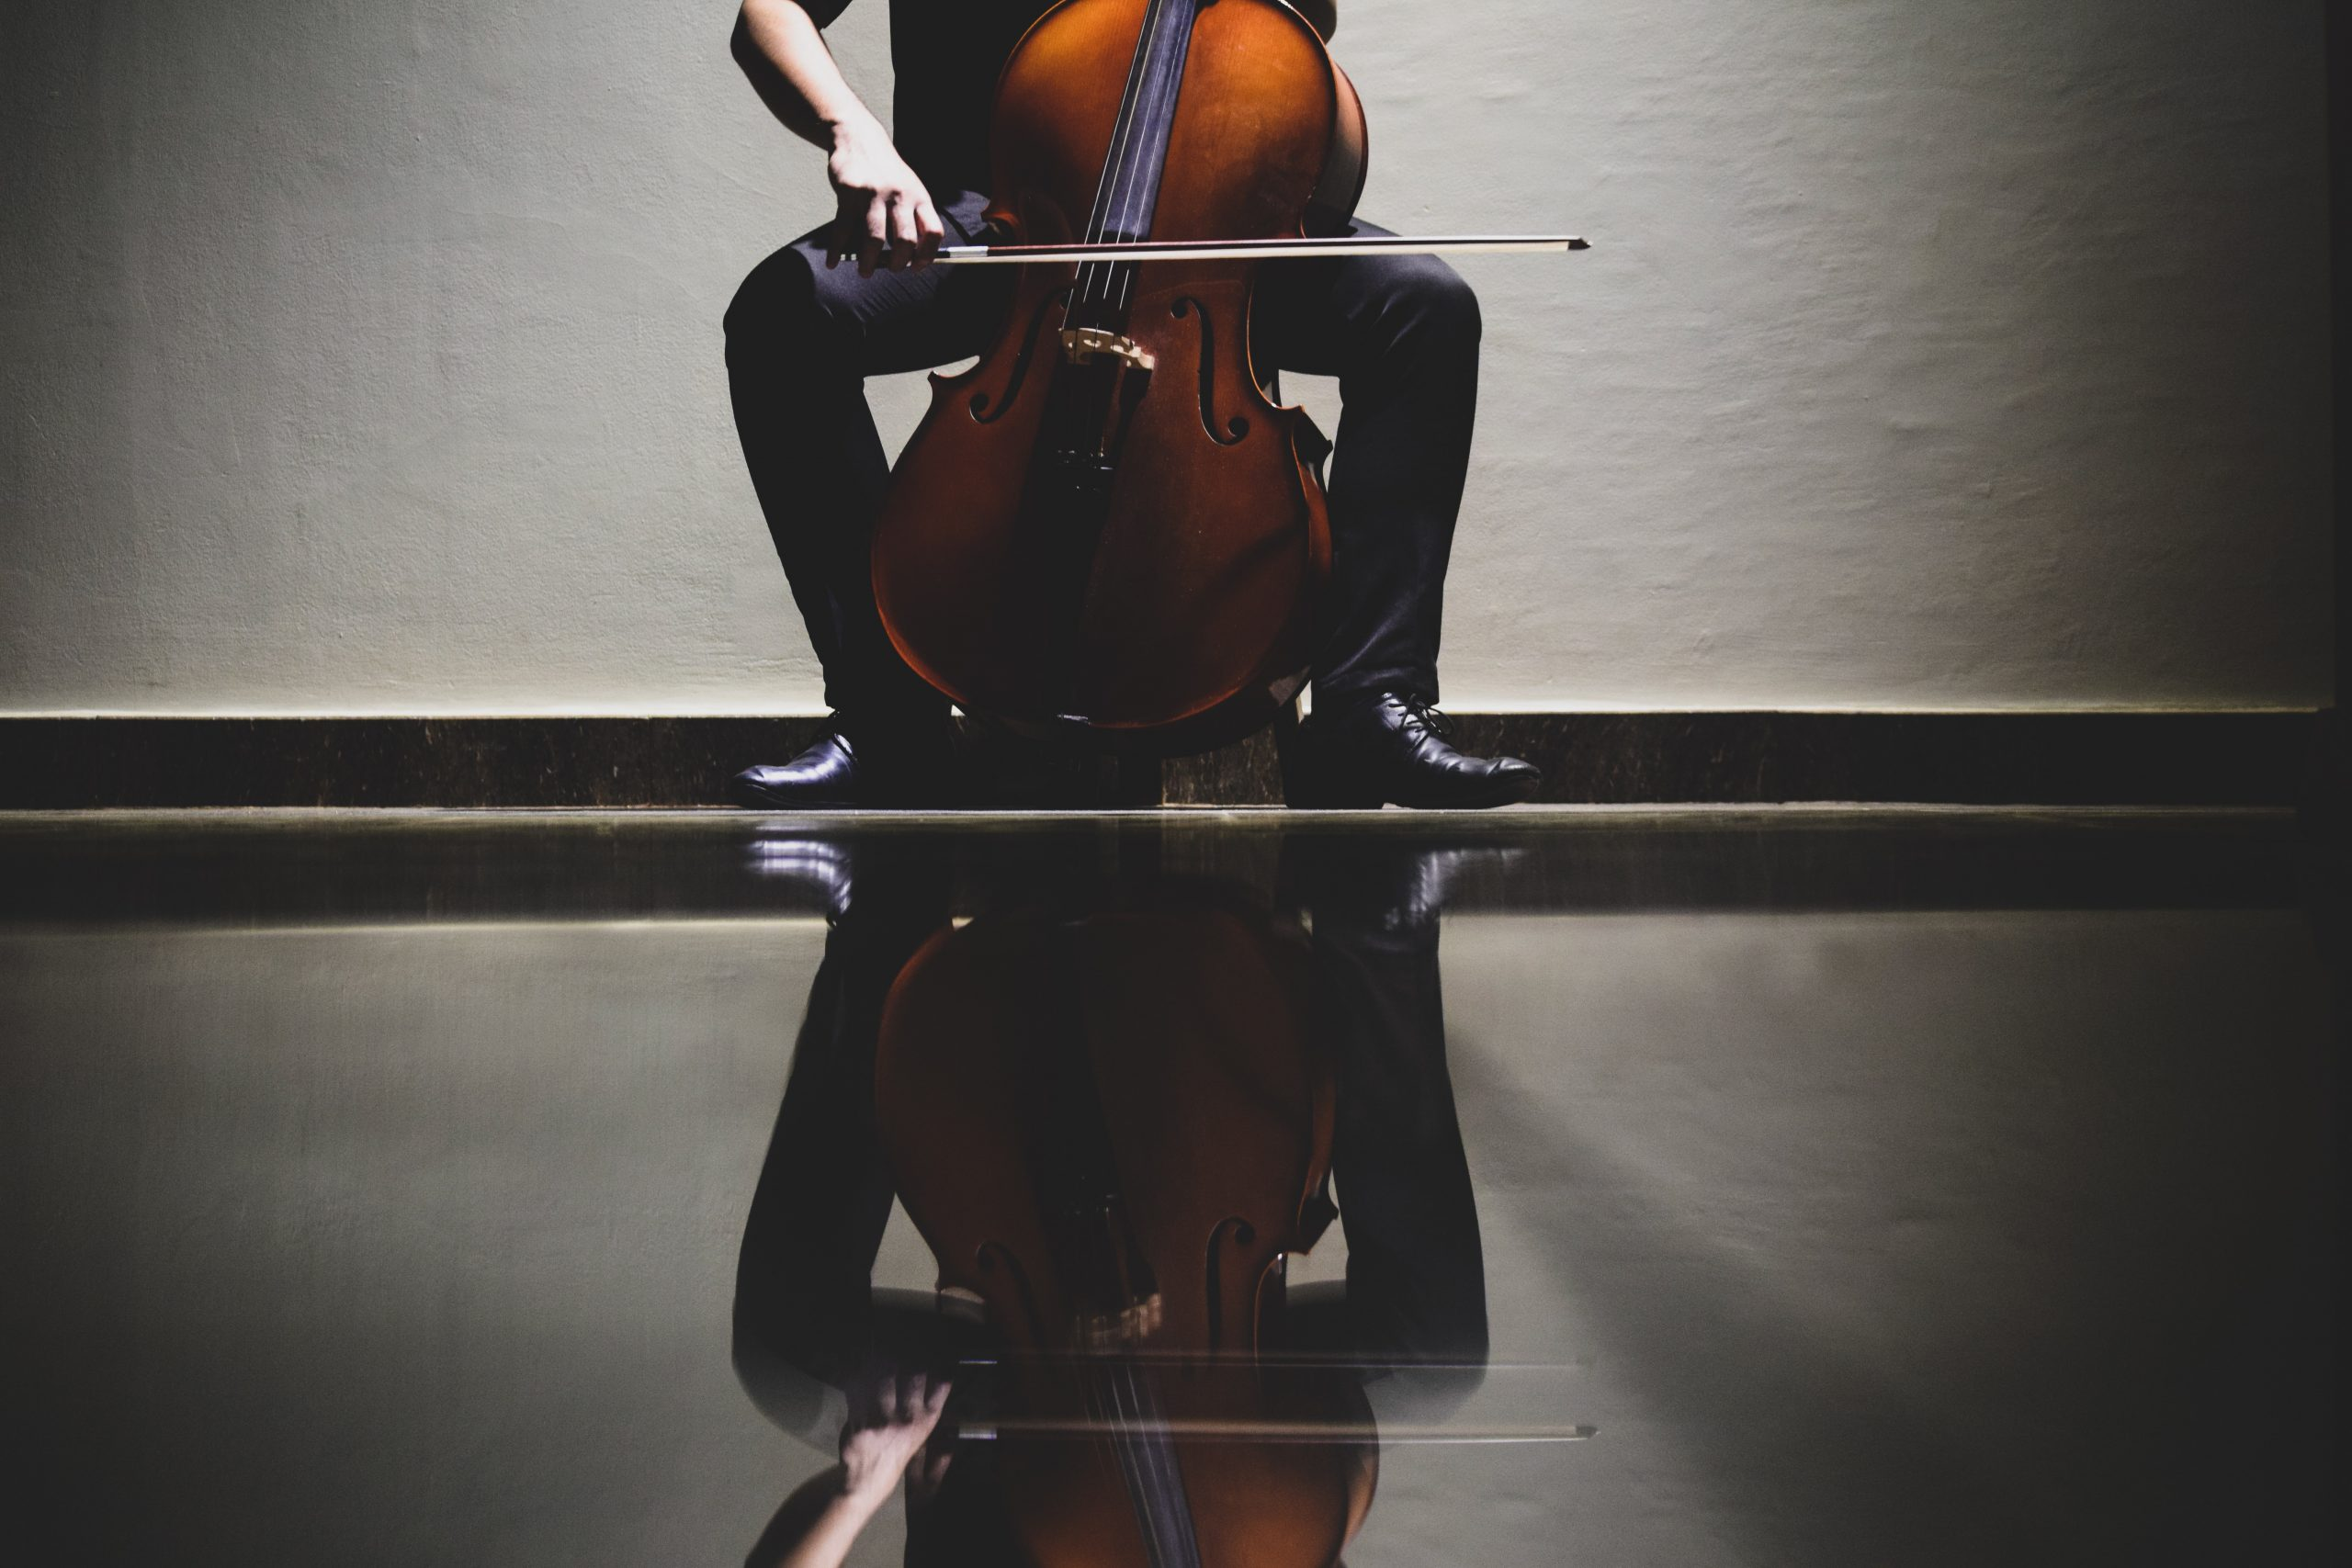 Chamber music event by the MPO